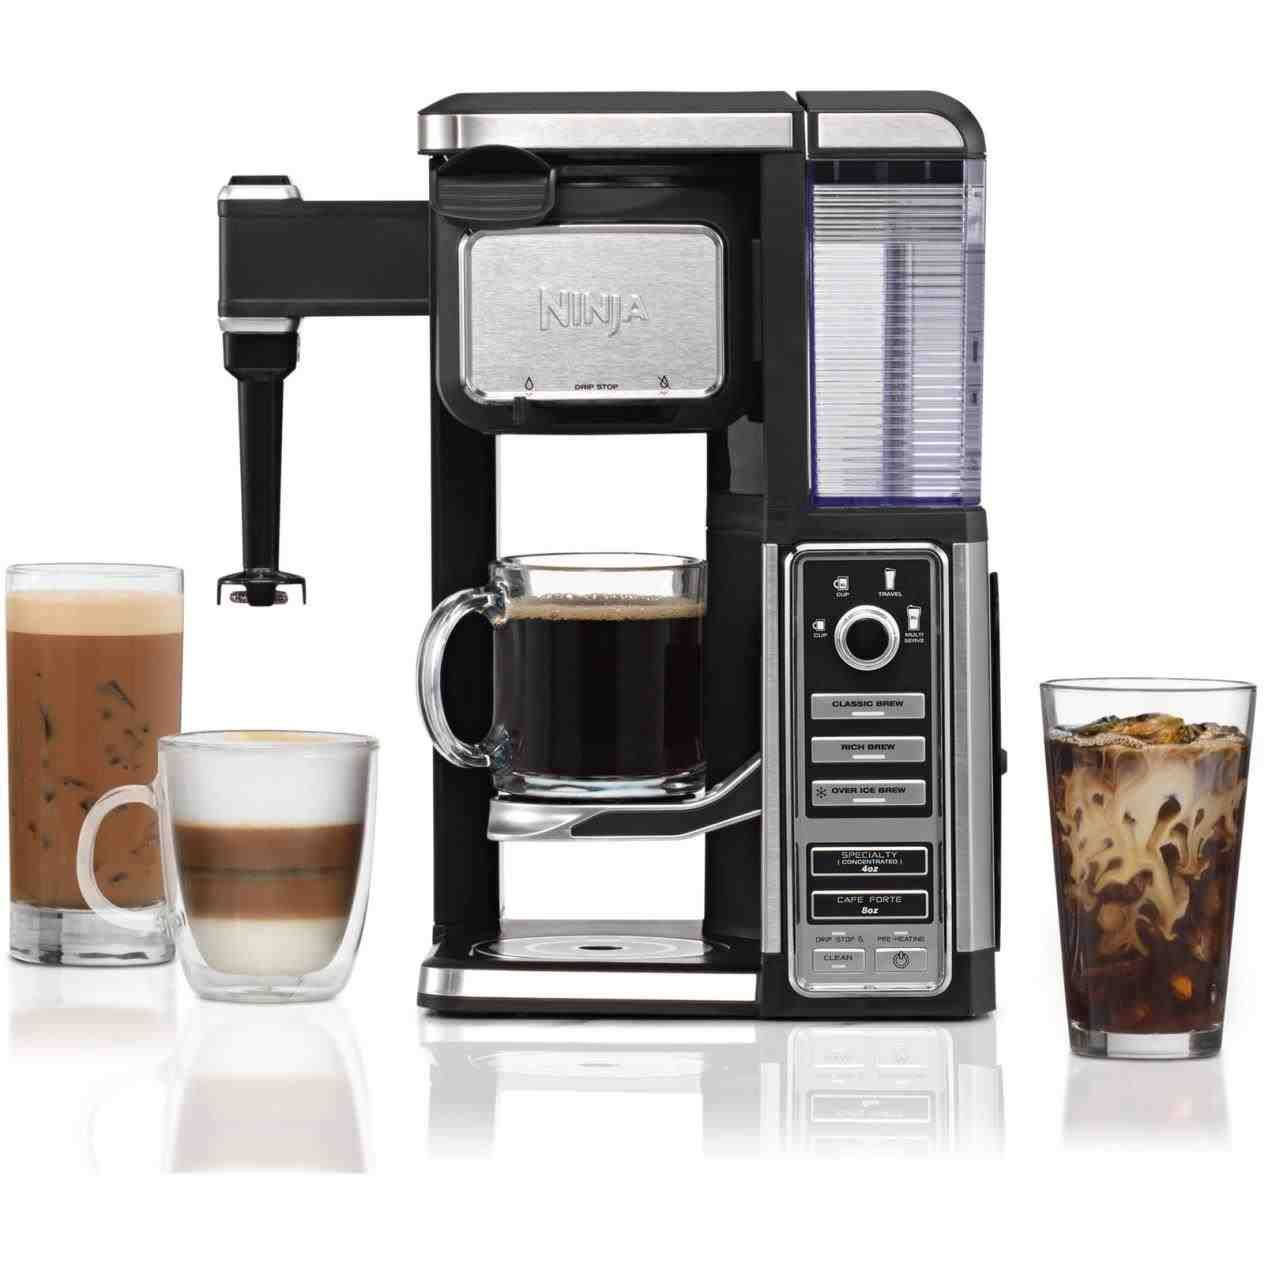 New post braun coffee maker cup decors ideas pinterest